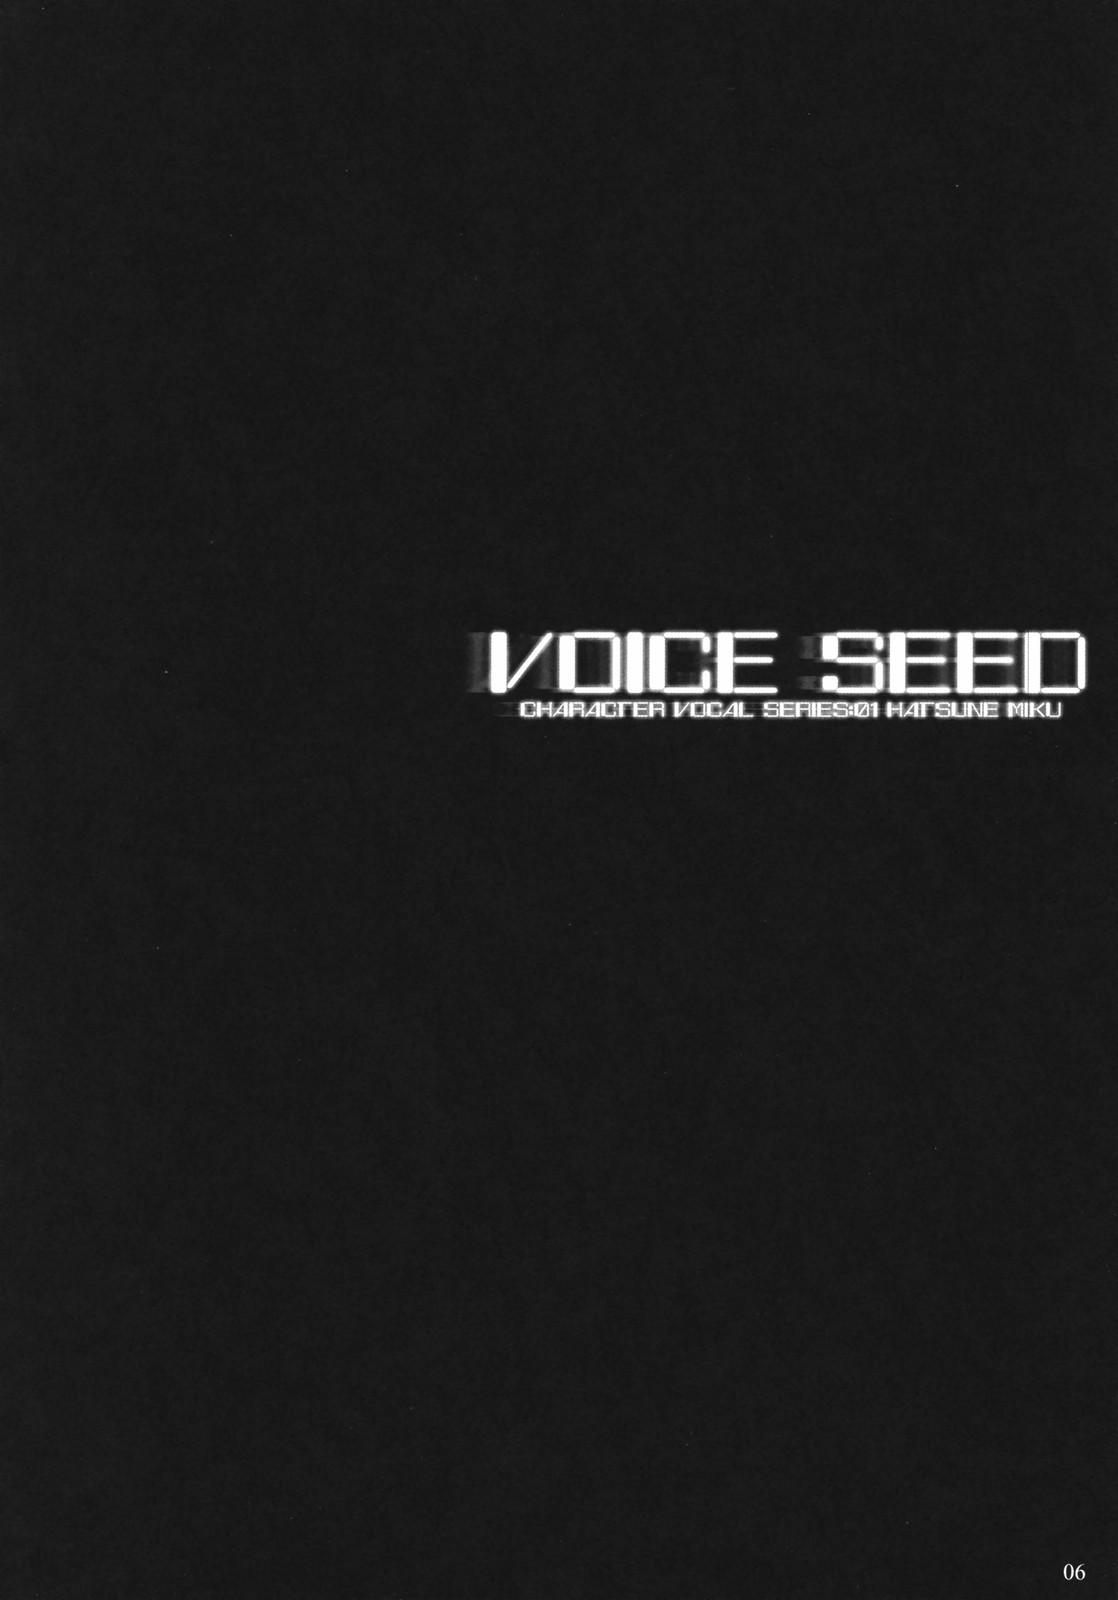 Voice Seed 4